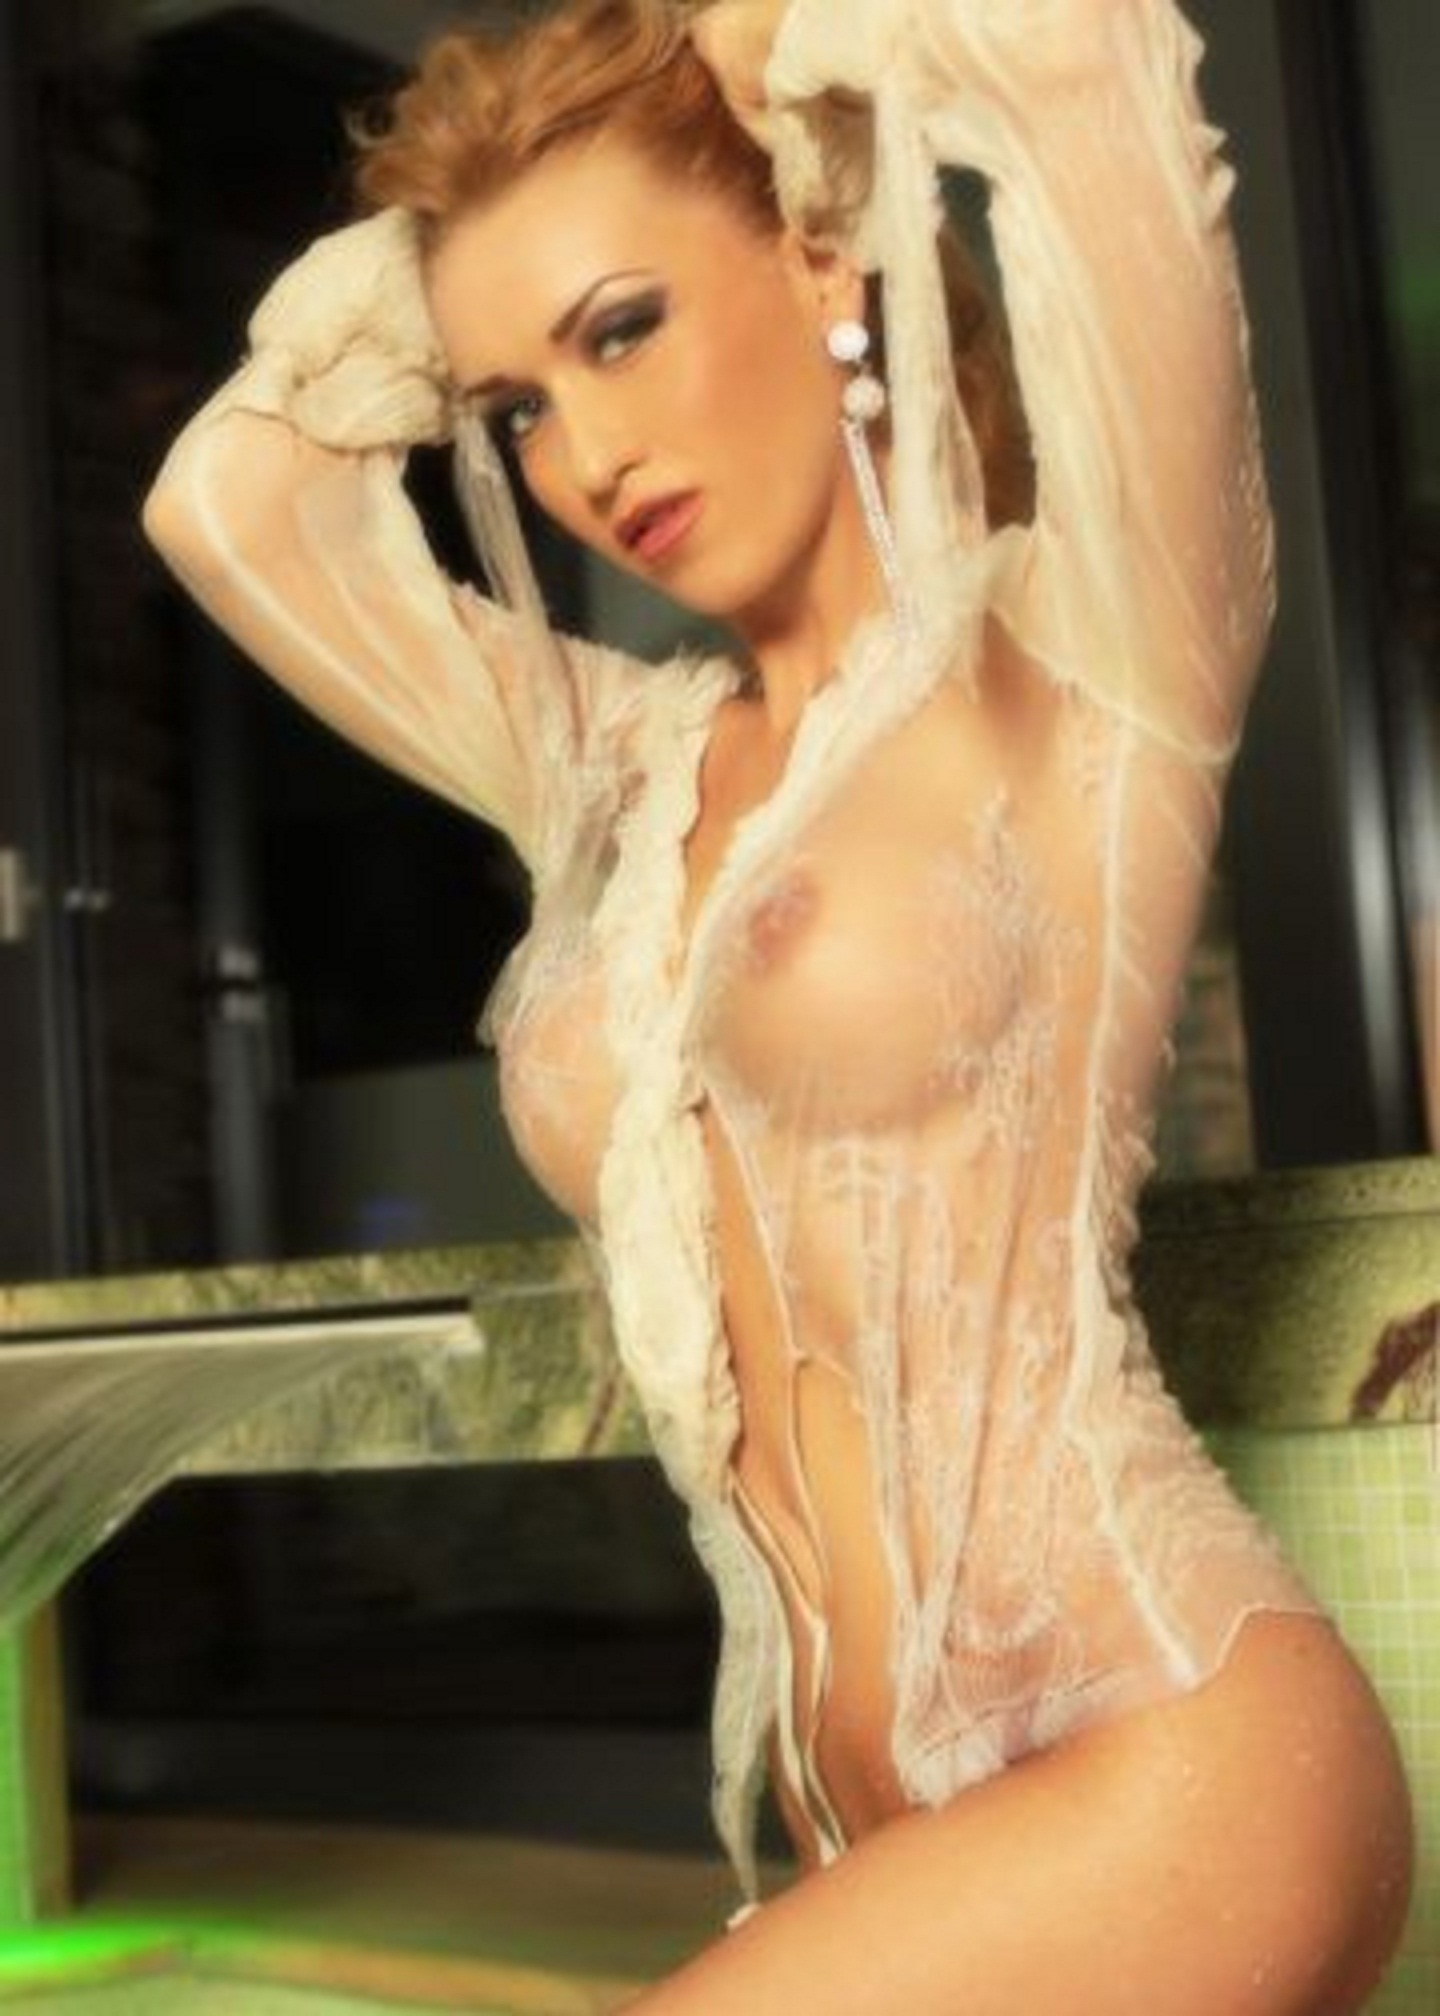 Anna escort in Amsterdam only for mans! - Afbeelding1